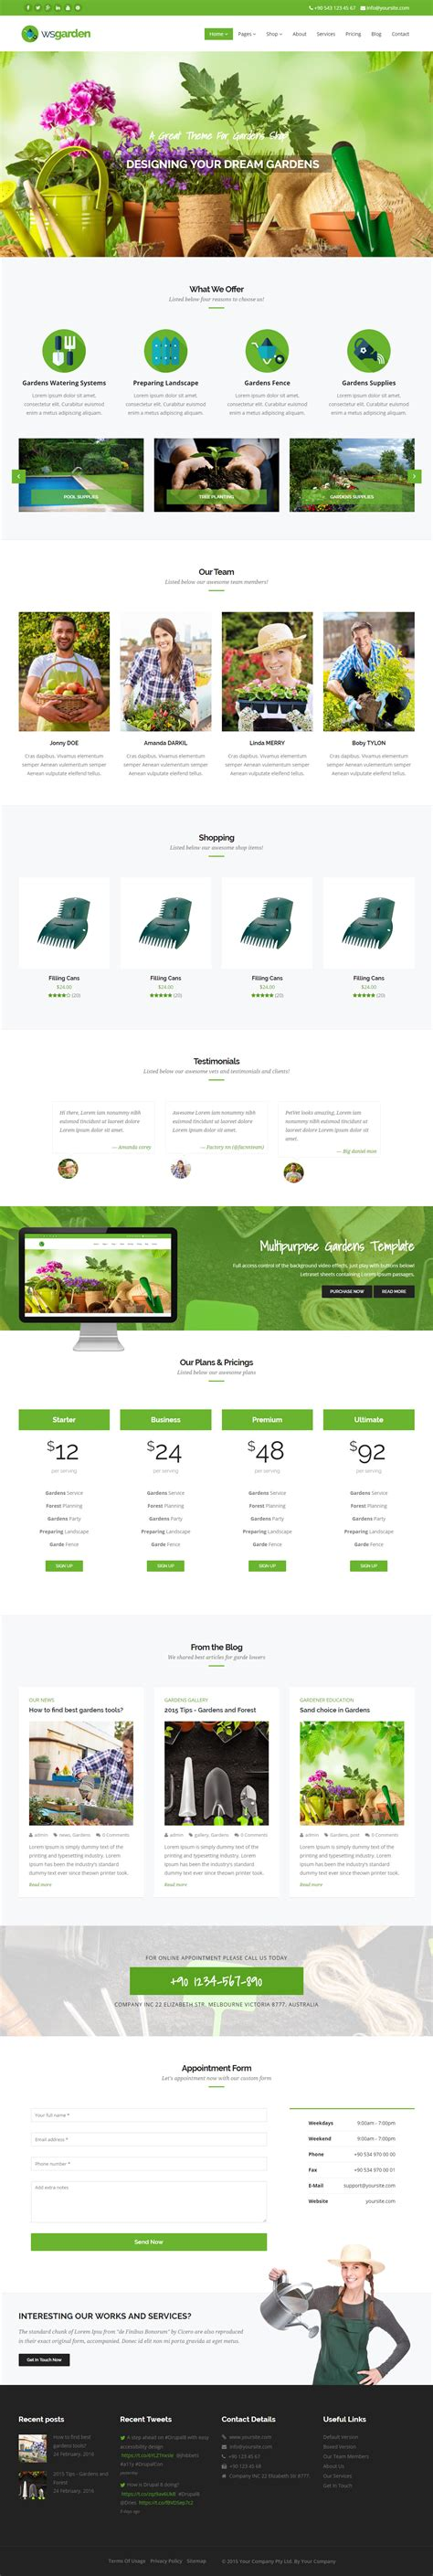 bootstrap template gardening best responsive drupal garden themes 2016 responsive miracle